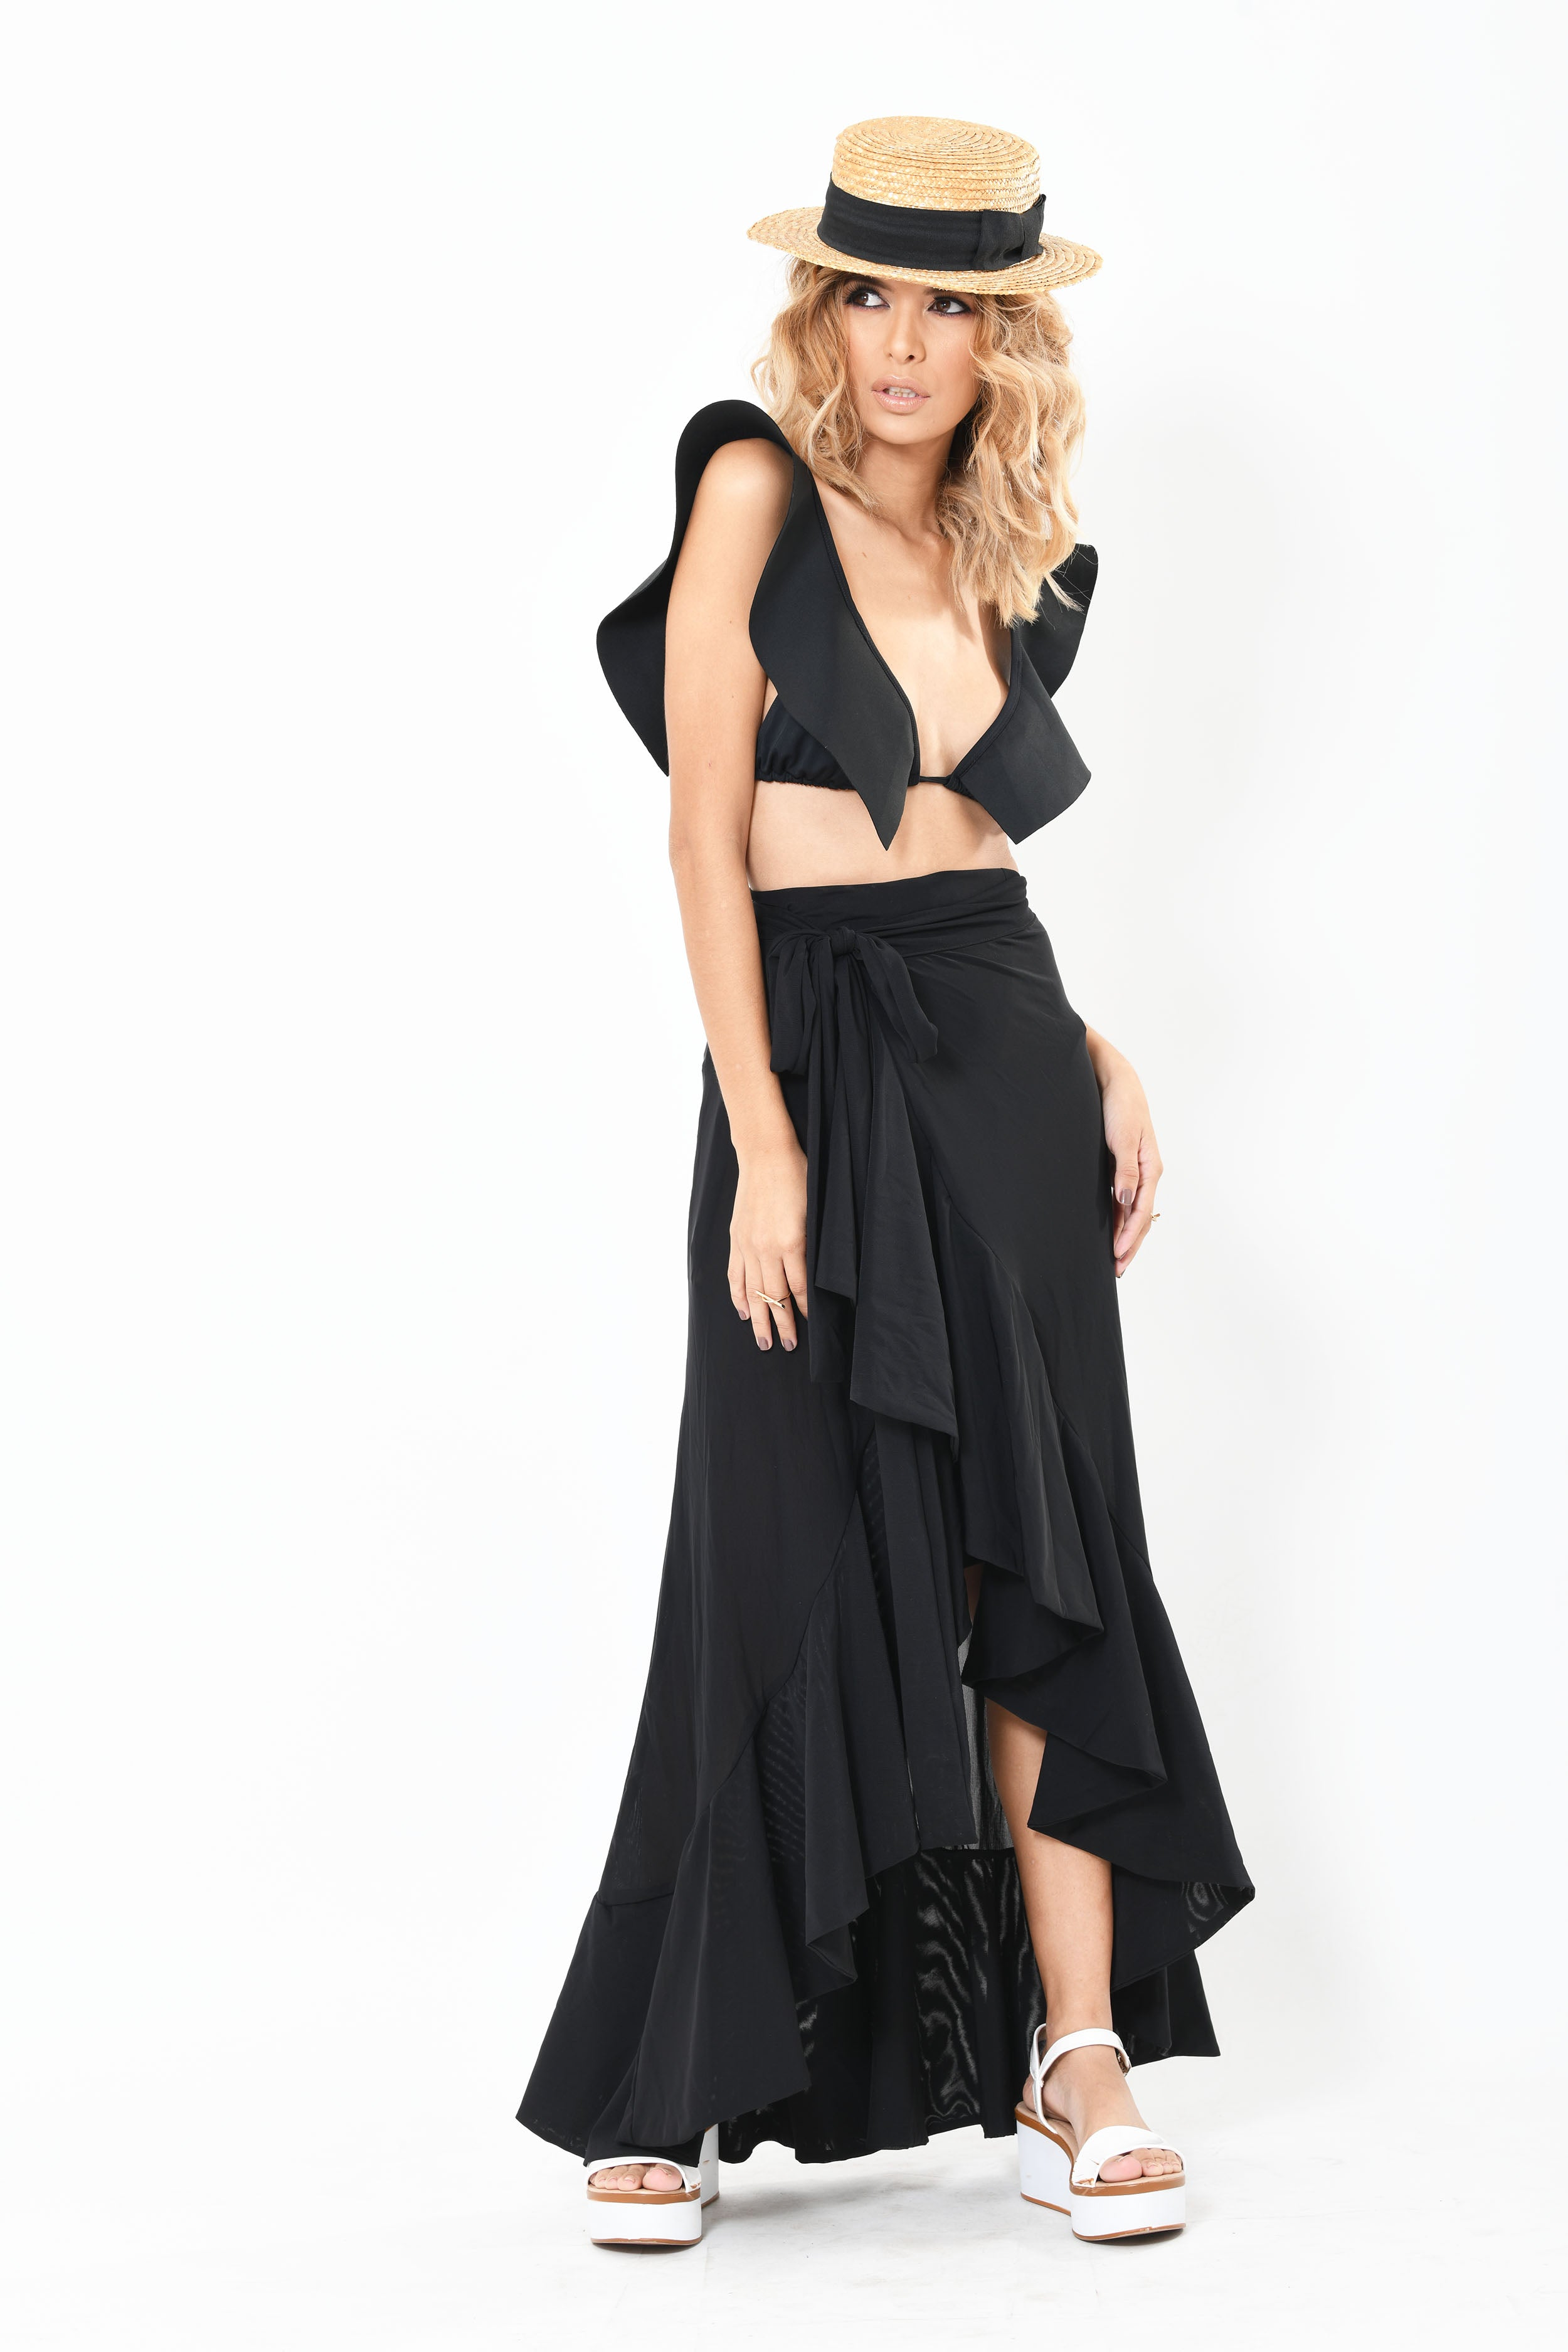 Wrap Around Ruffle Skirt